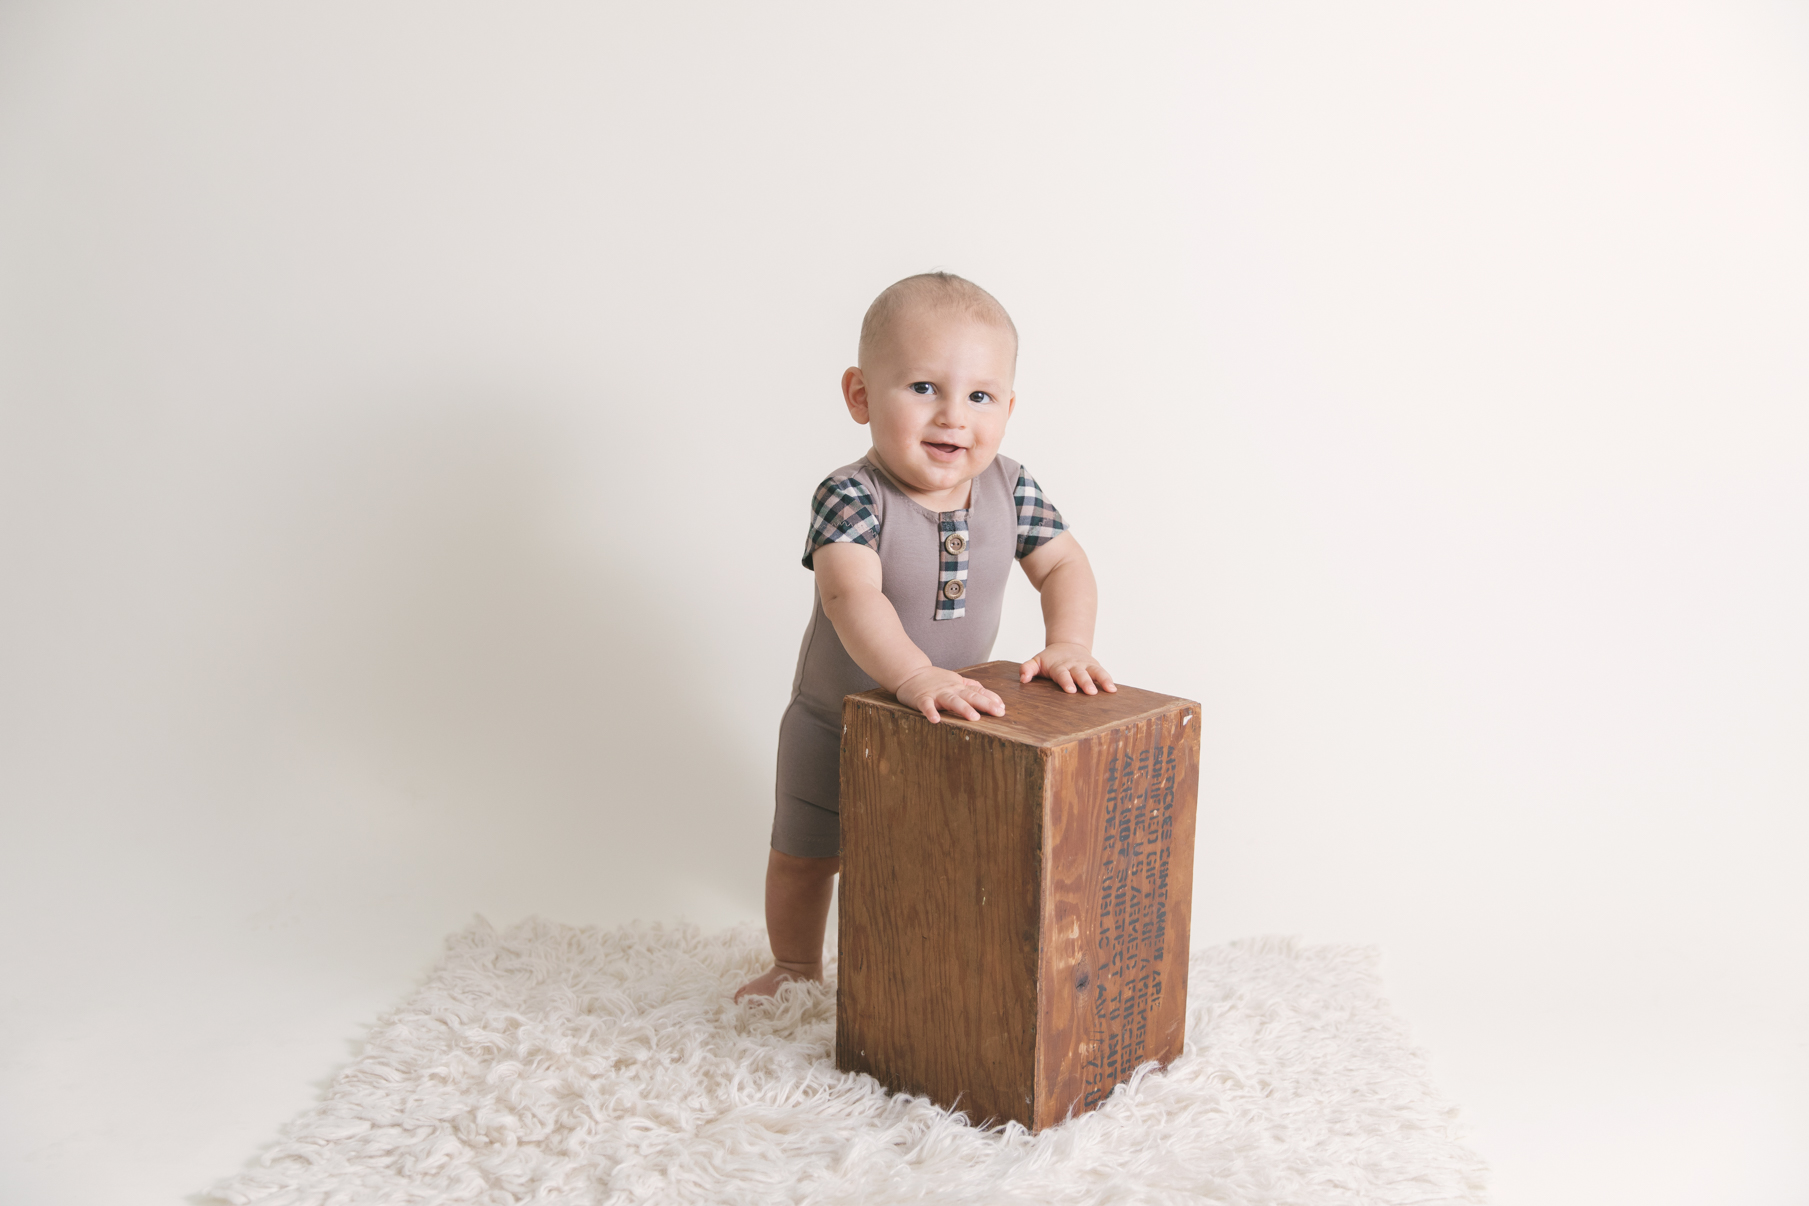 studio-milestone-session-three-six-nine-sessions-first-year-sessions-by-christie-leigh-photo-maternity-and-newborn-photographer-15.JPG